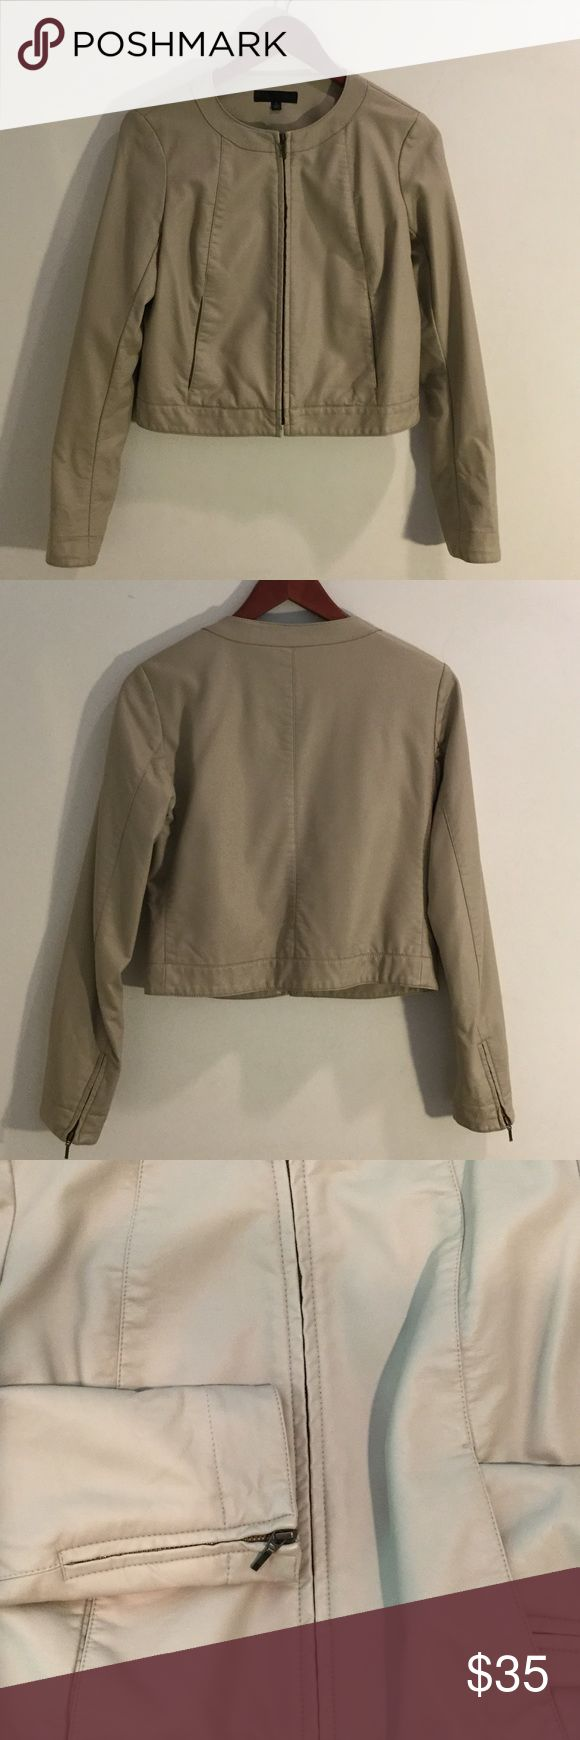 Beige Leather jacket Beige faux leather jacket like new with zipper sleeve detail. Goes great with everything!!! Size smalll Uniqlo Jackets & Coats